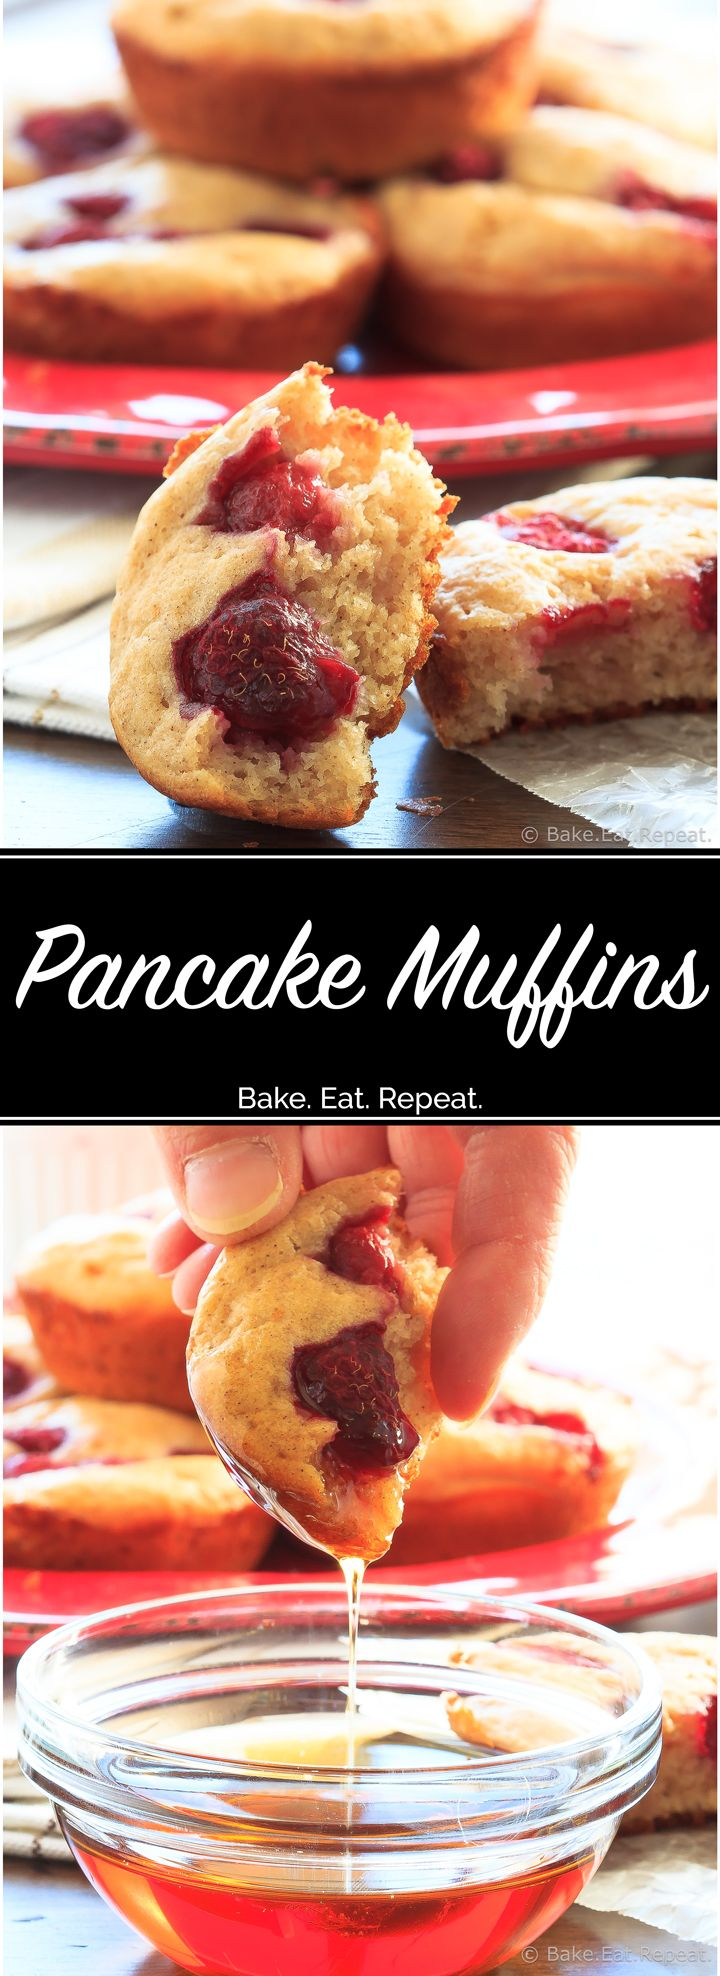 Pancake Muffins - Pancakes in muffin form. Because pancake muffins are cute and fun and who doesn't need more ways to make and enjoy pancakes?